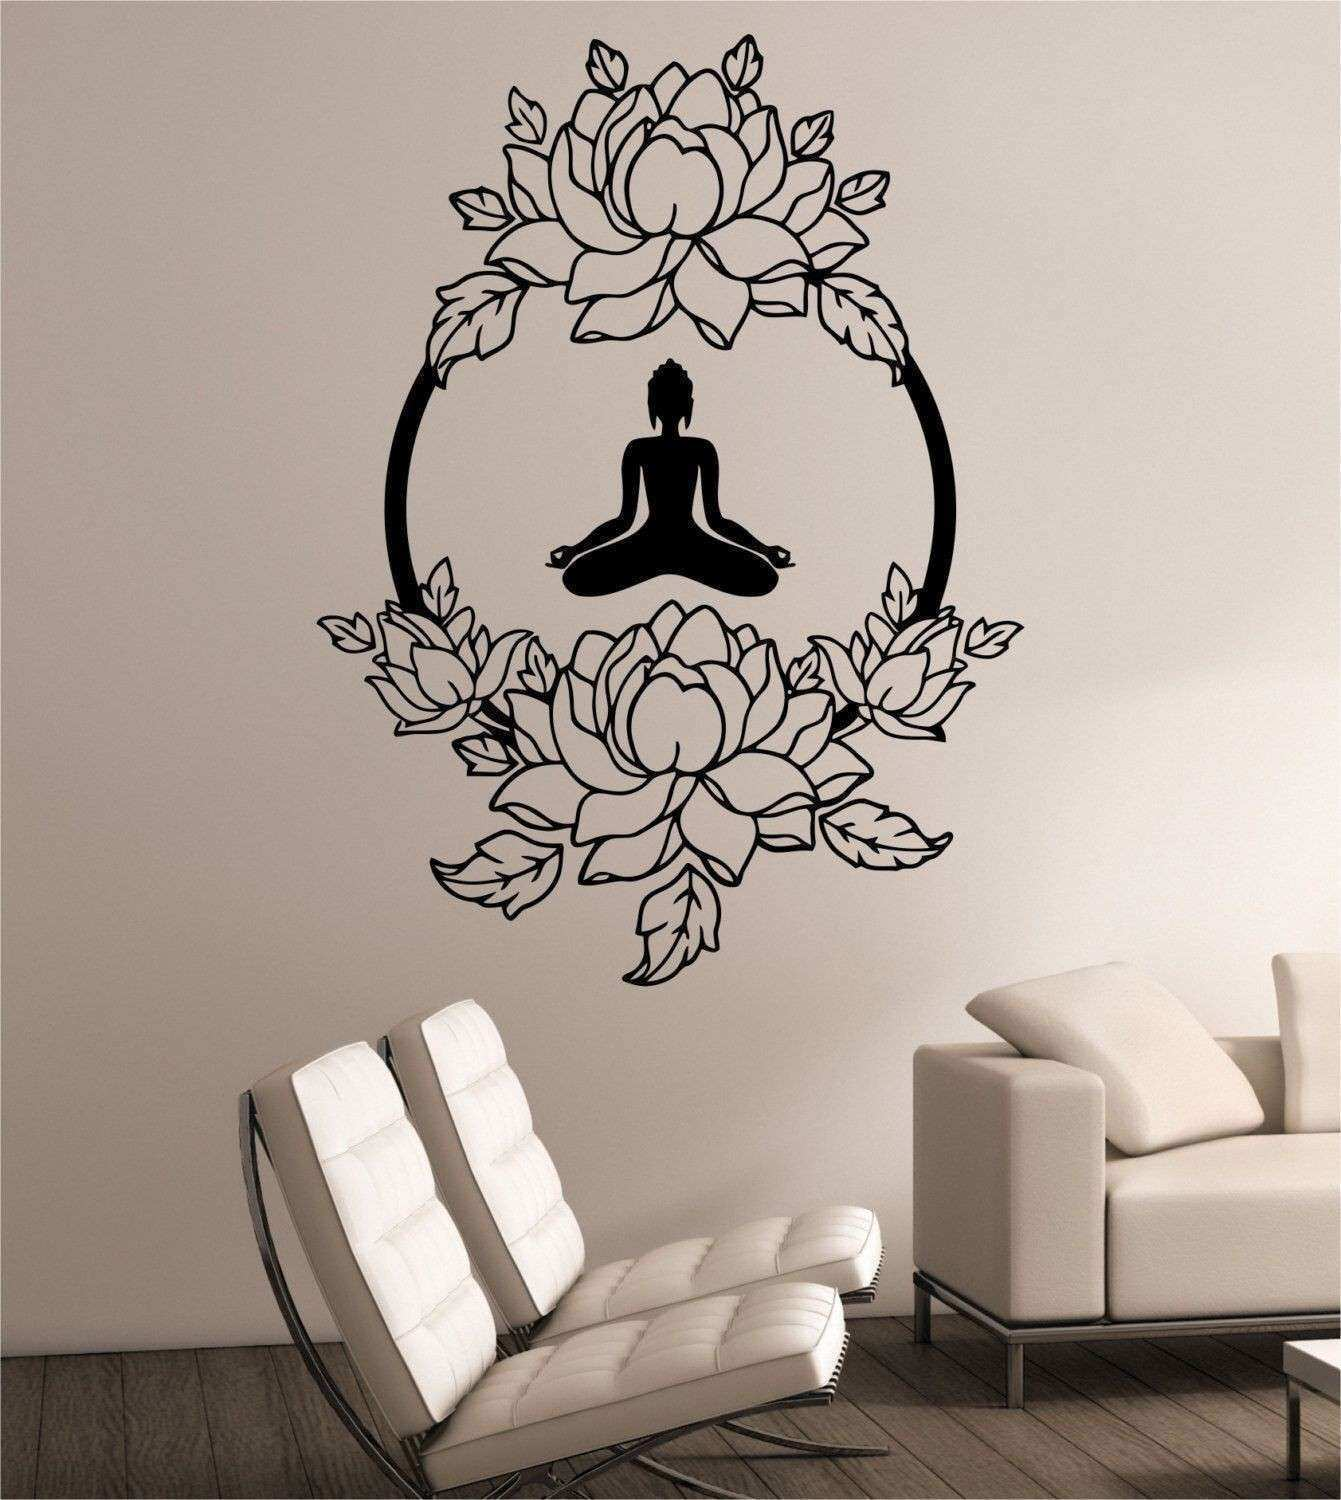 Wall Decor Stickers for Bedroom New Wall Decal Luxury 1 Kirkland